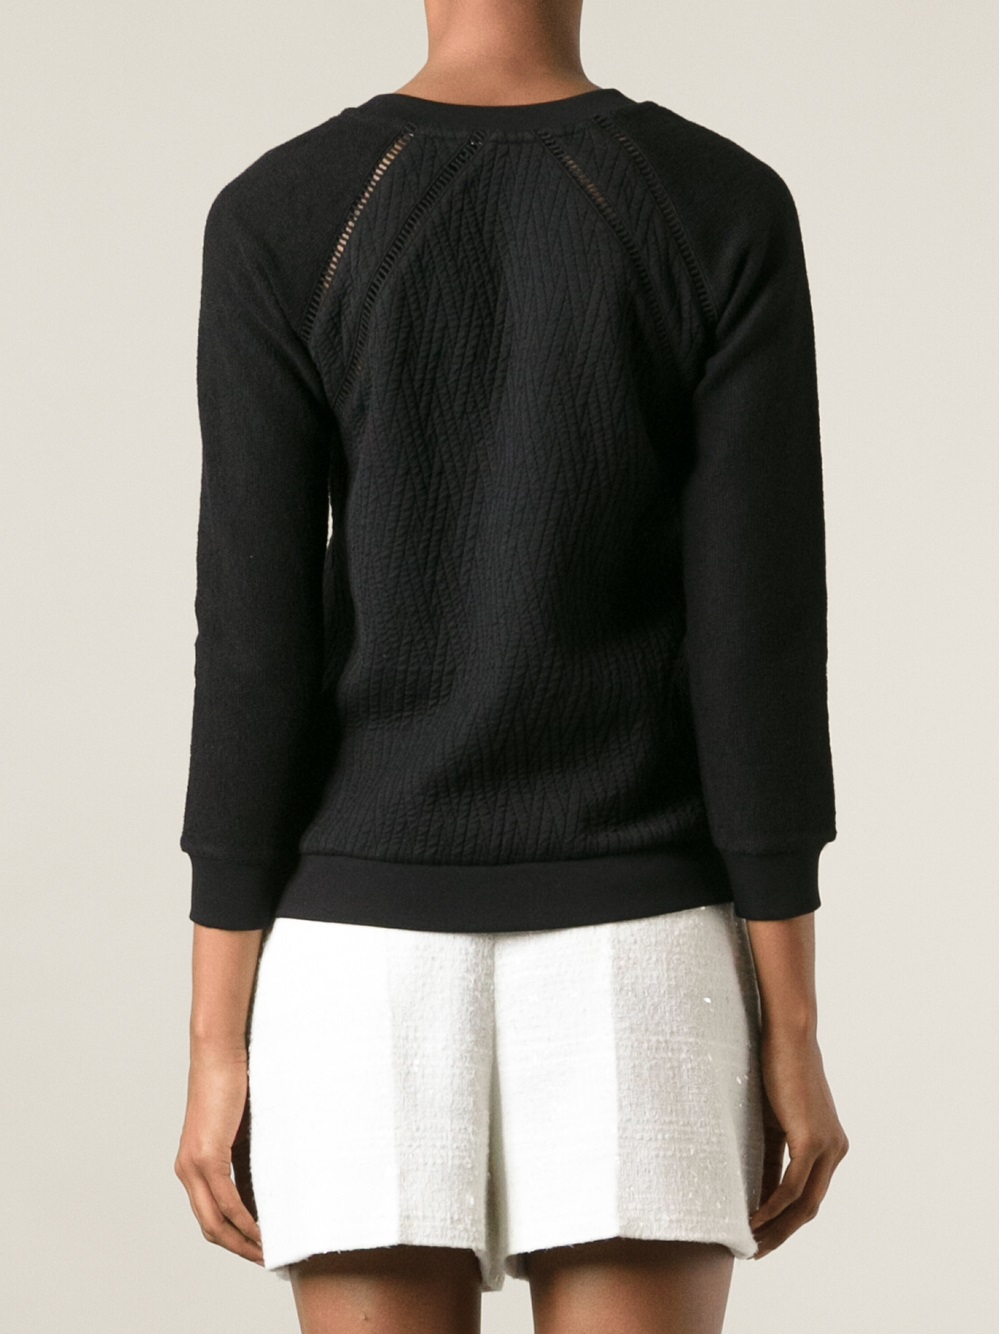 marc by marc jacobs quilted sweater in black lyst. Black Bedroom Furniture Sets. Home Design Ideas